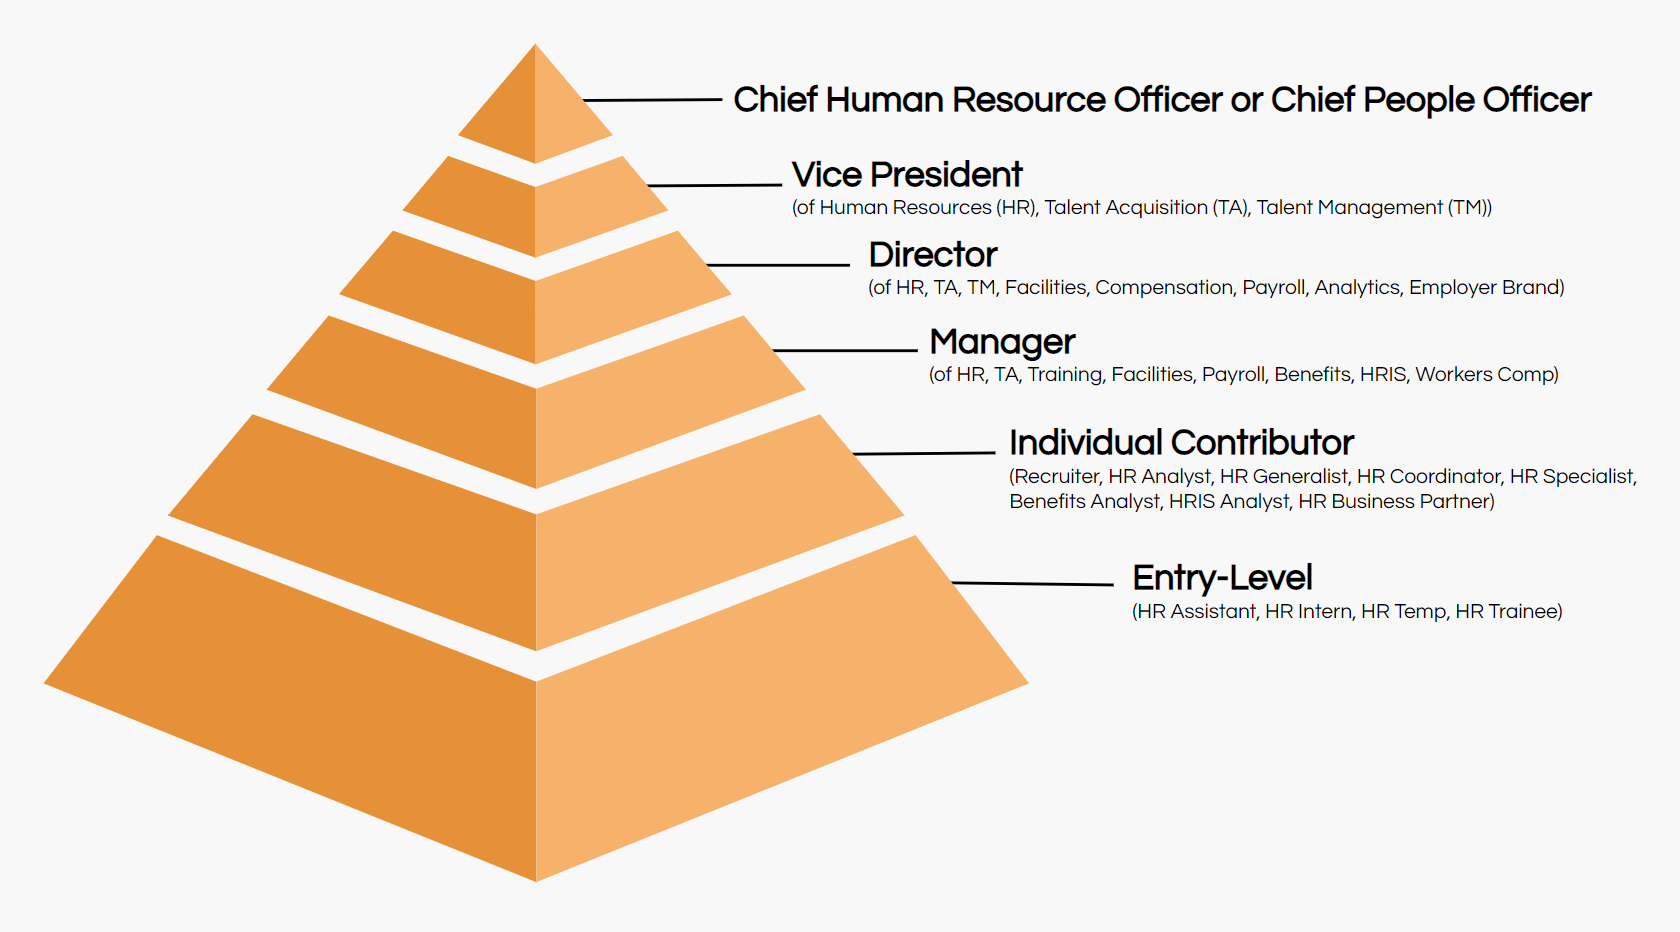 human resources job titles hierarchy